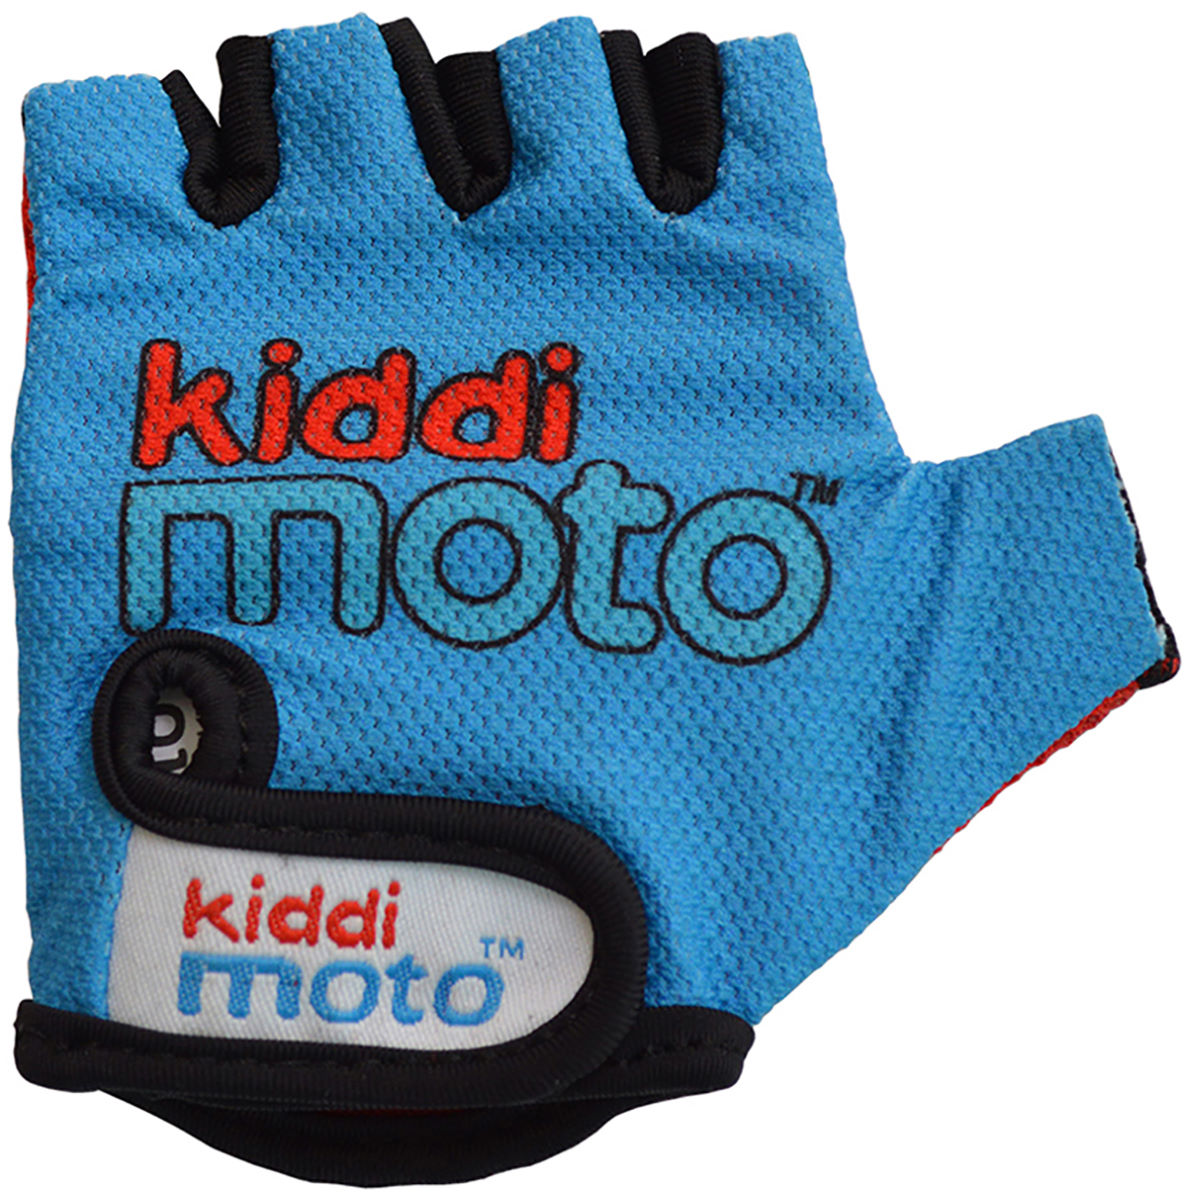 Kiddimoto Blue Gloves - Guantes cortos